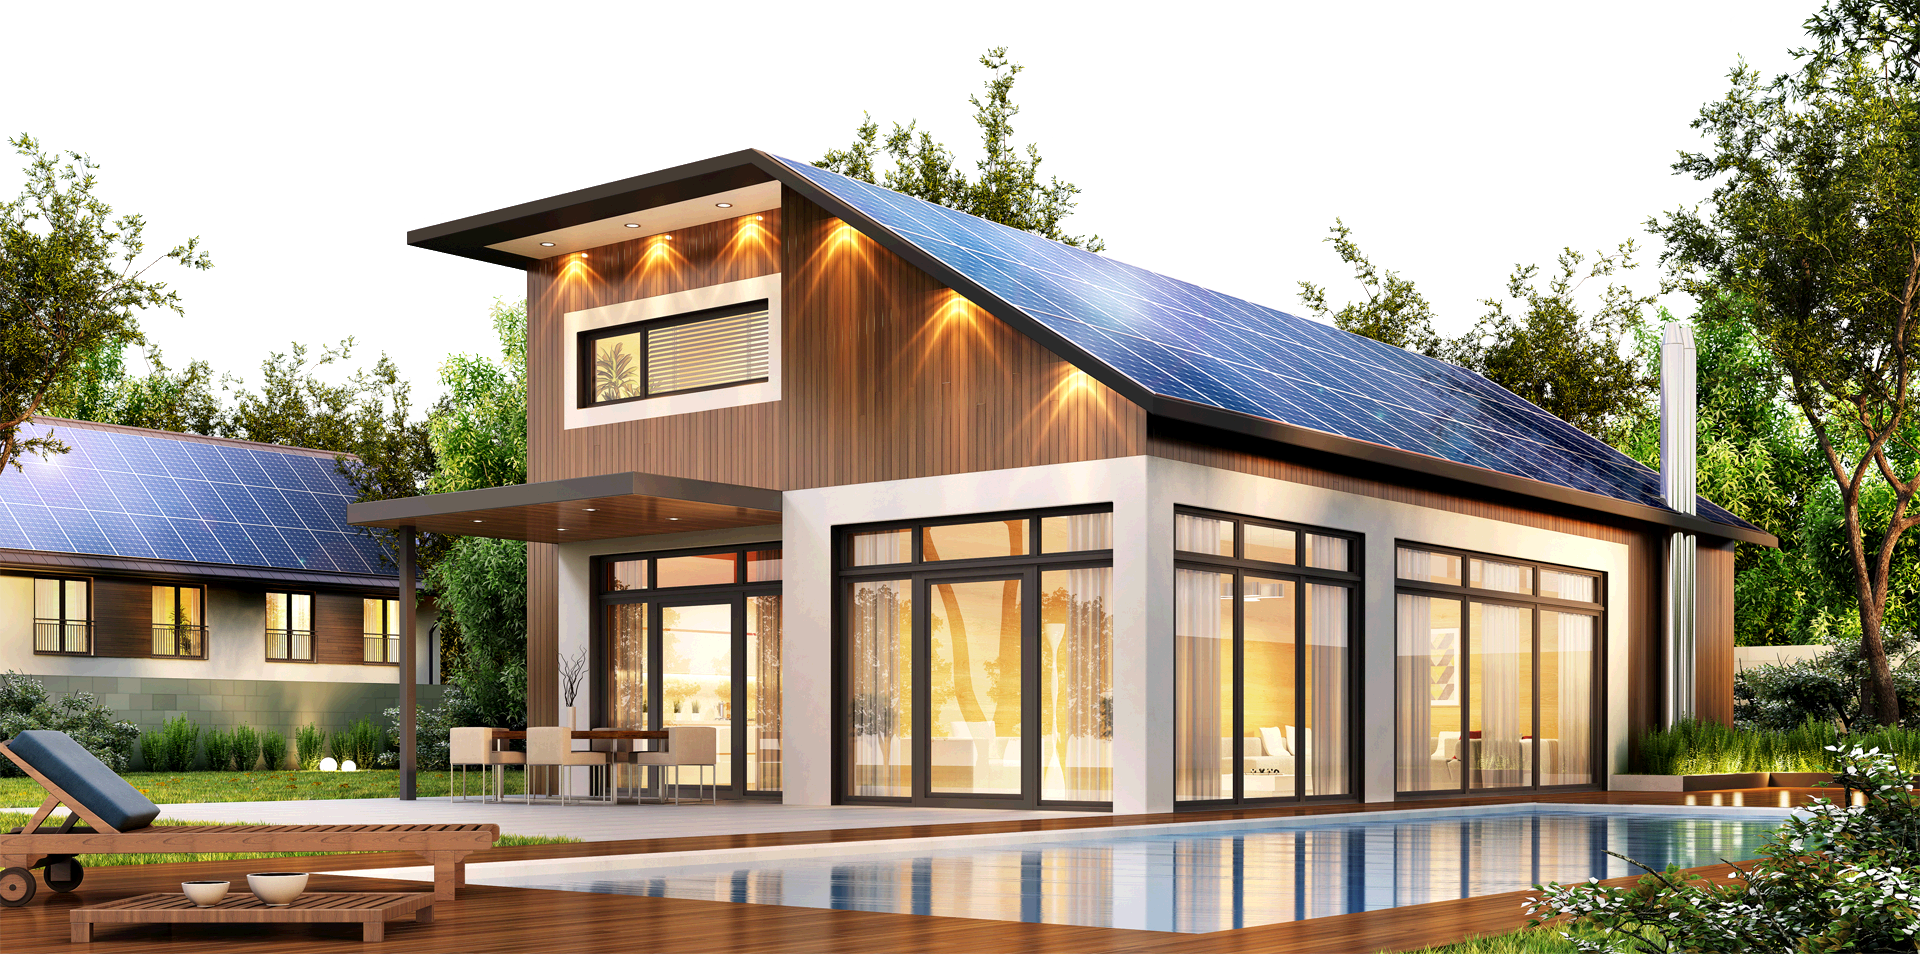 Solaron - Solar Electricity and Pool Heating